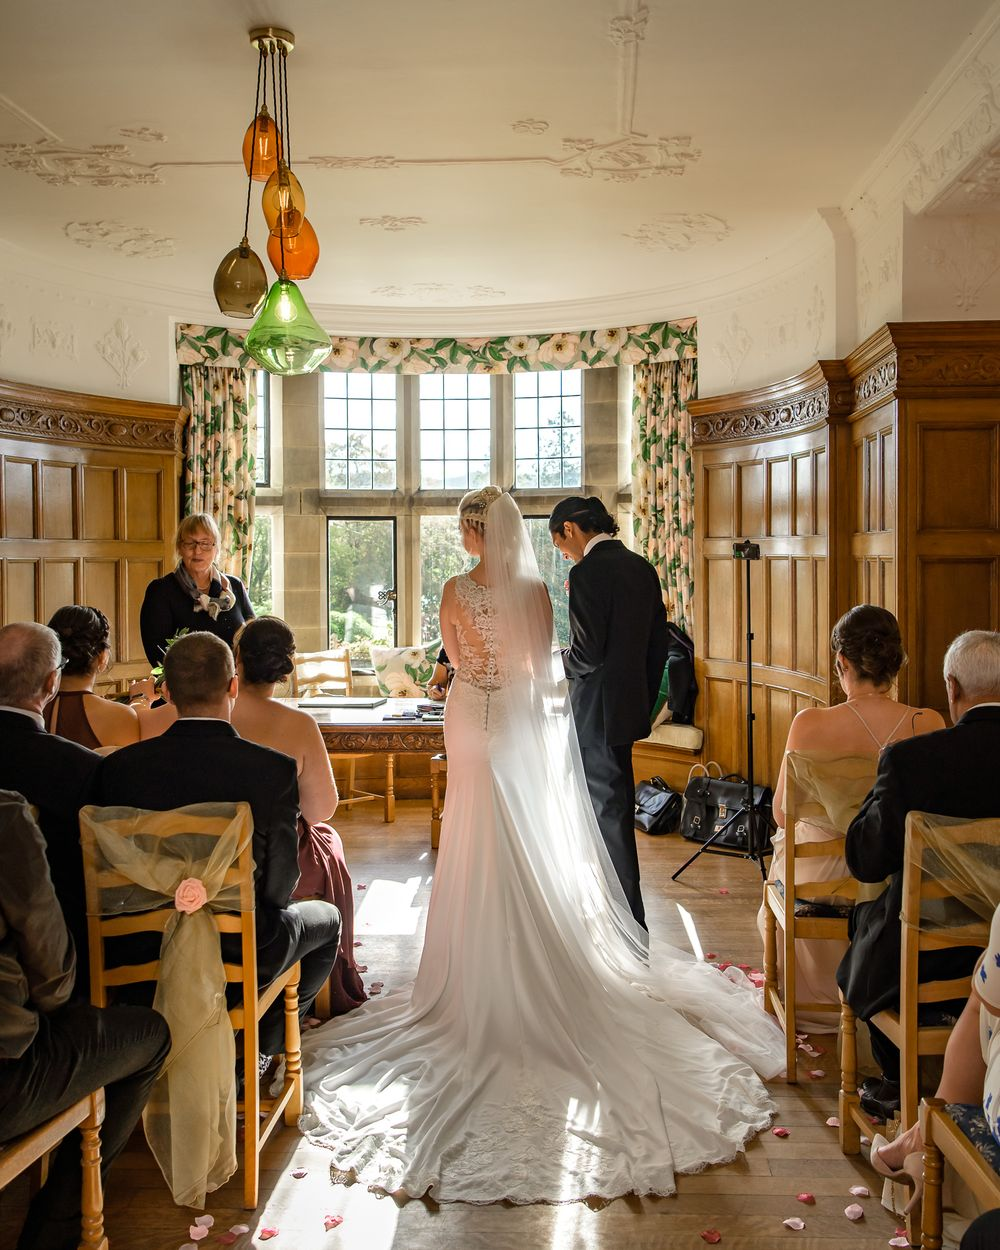 Wedding ceremony at Cragwood Country House Hotel